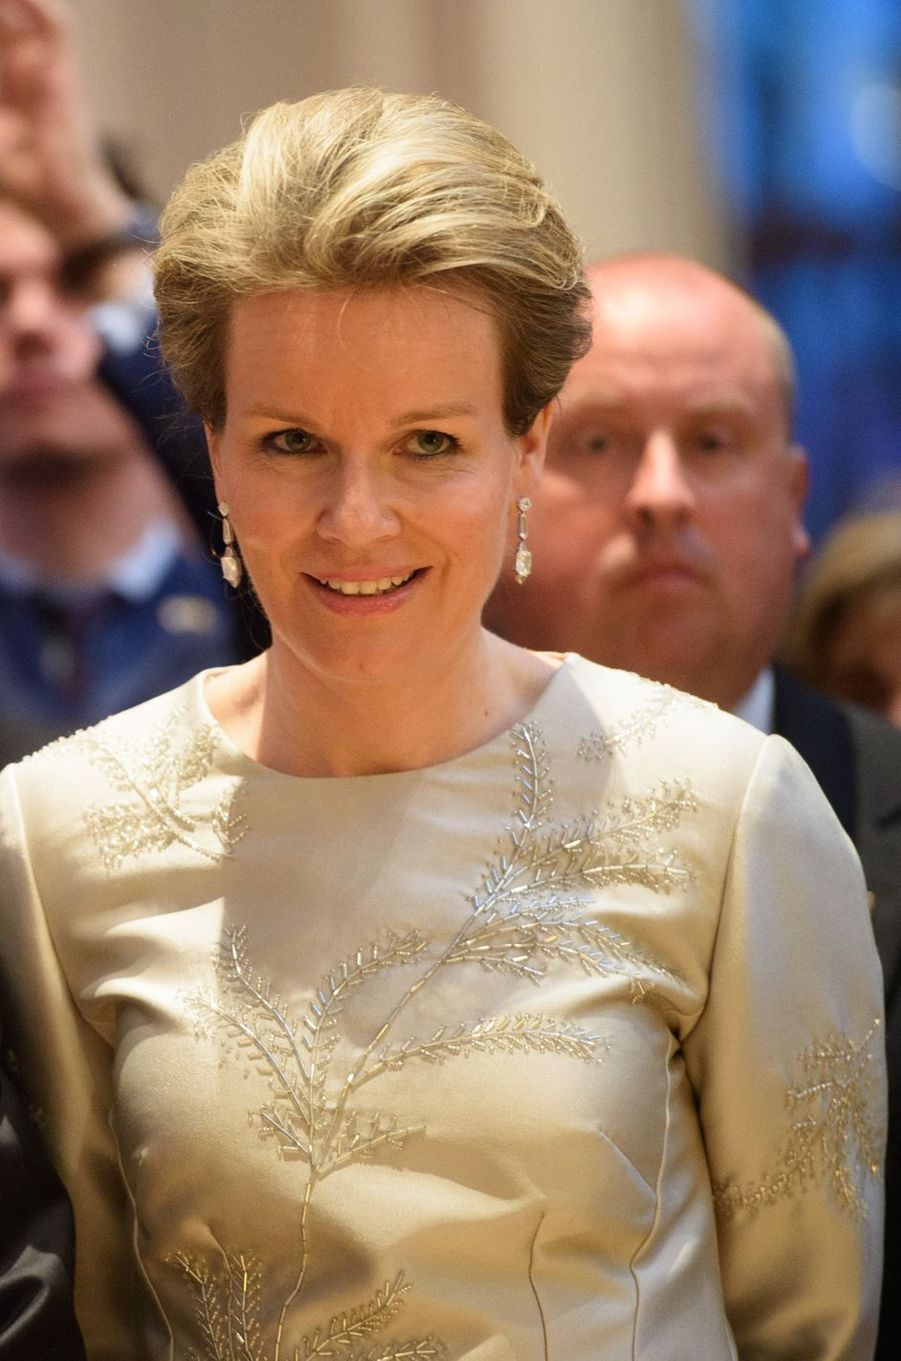 La reine Mathilde de Belgique à New York, le 23 avril 2018